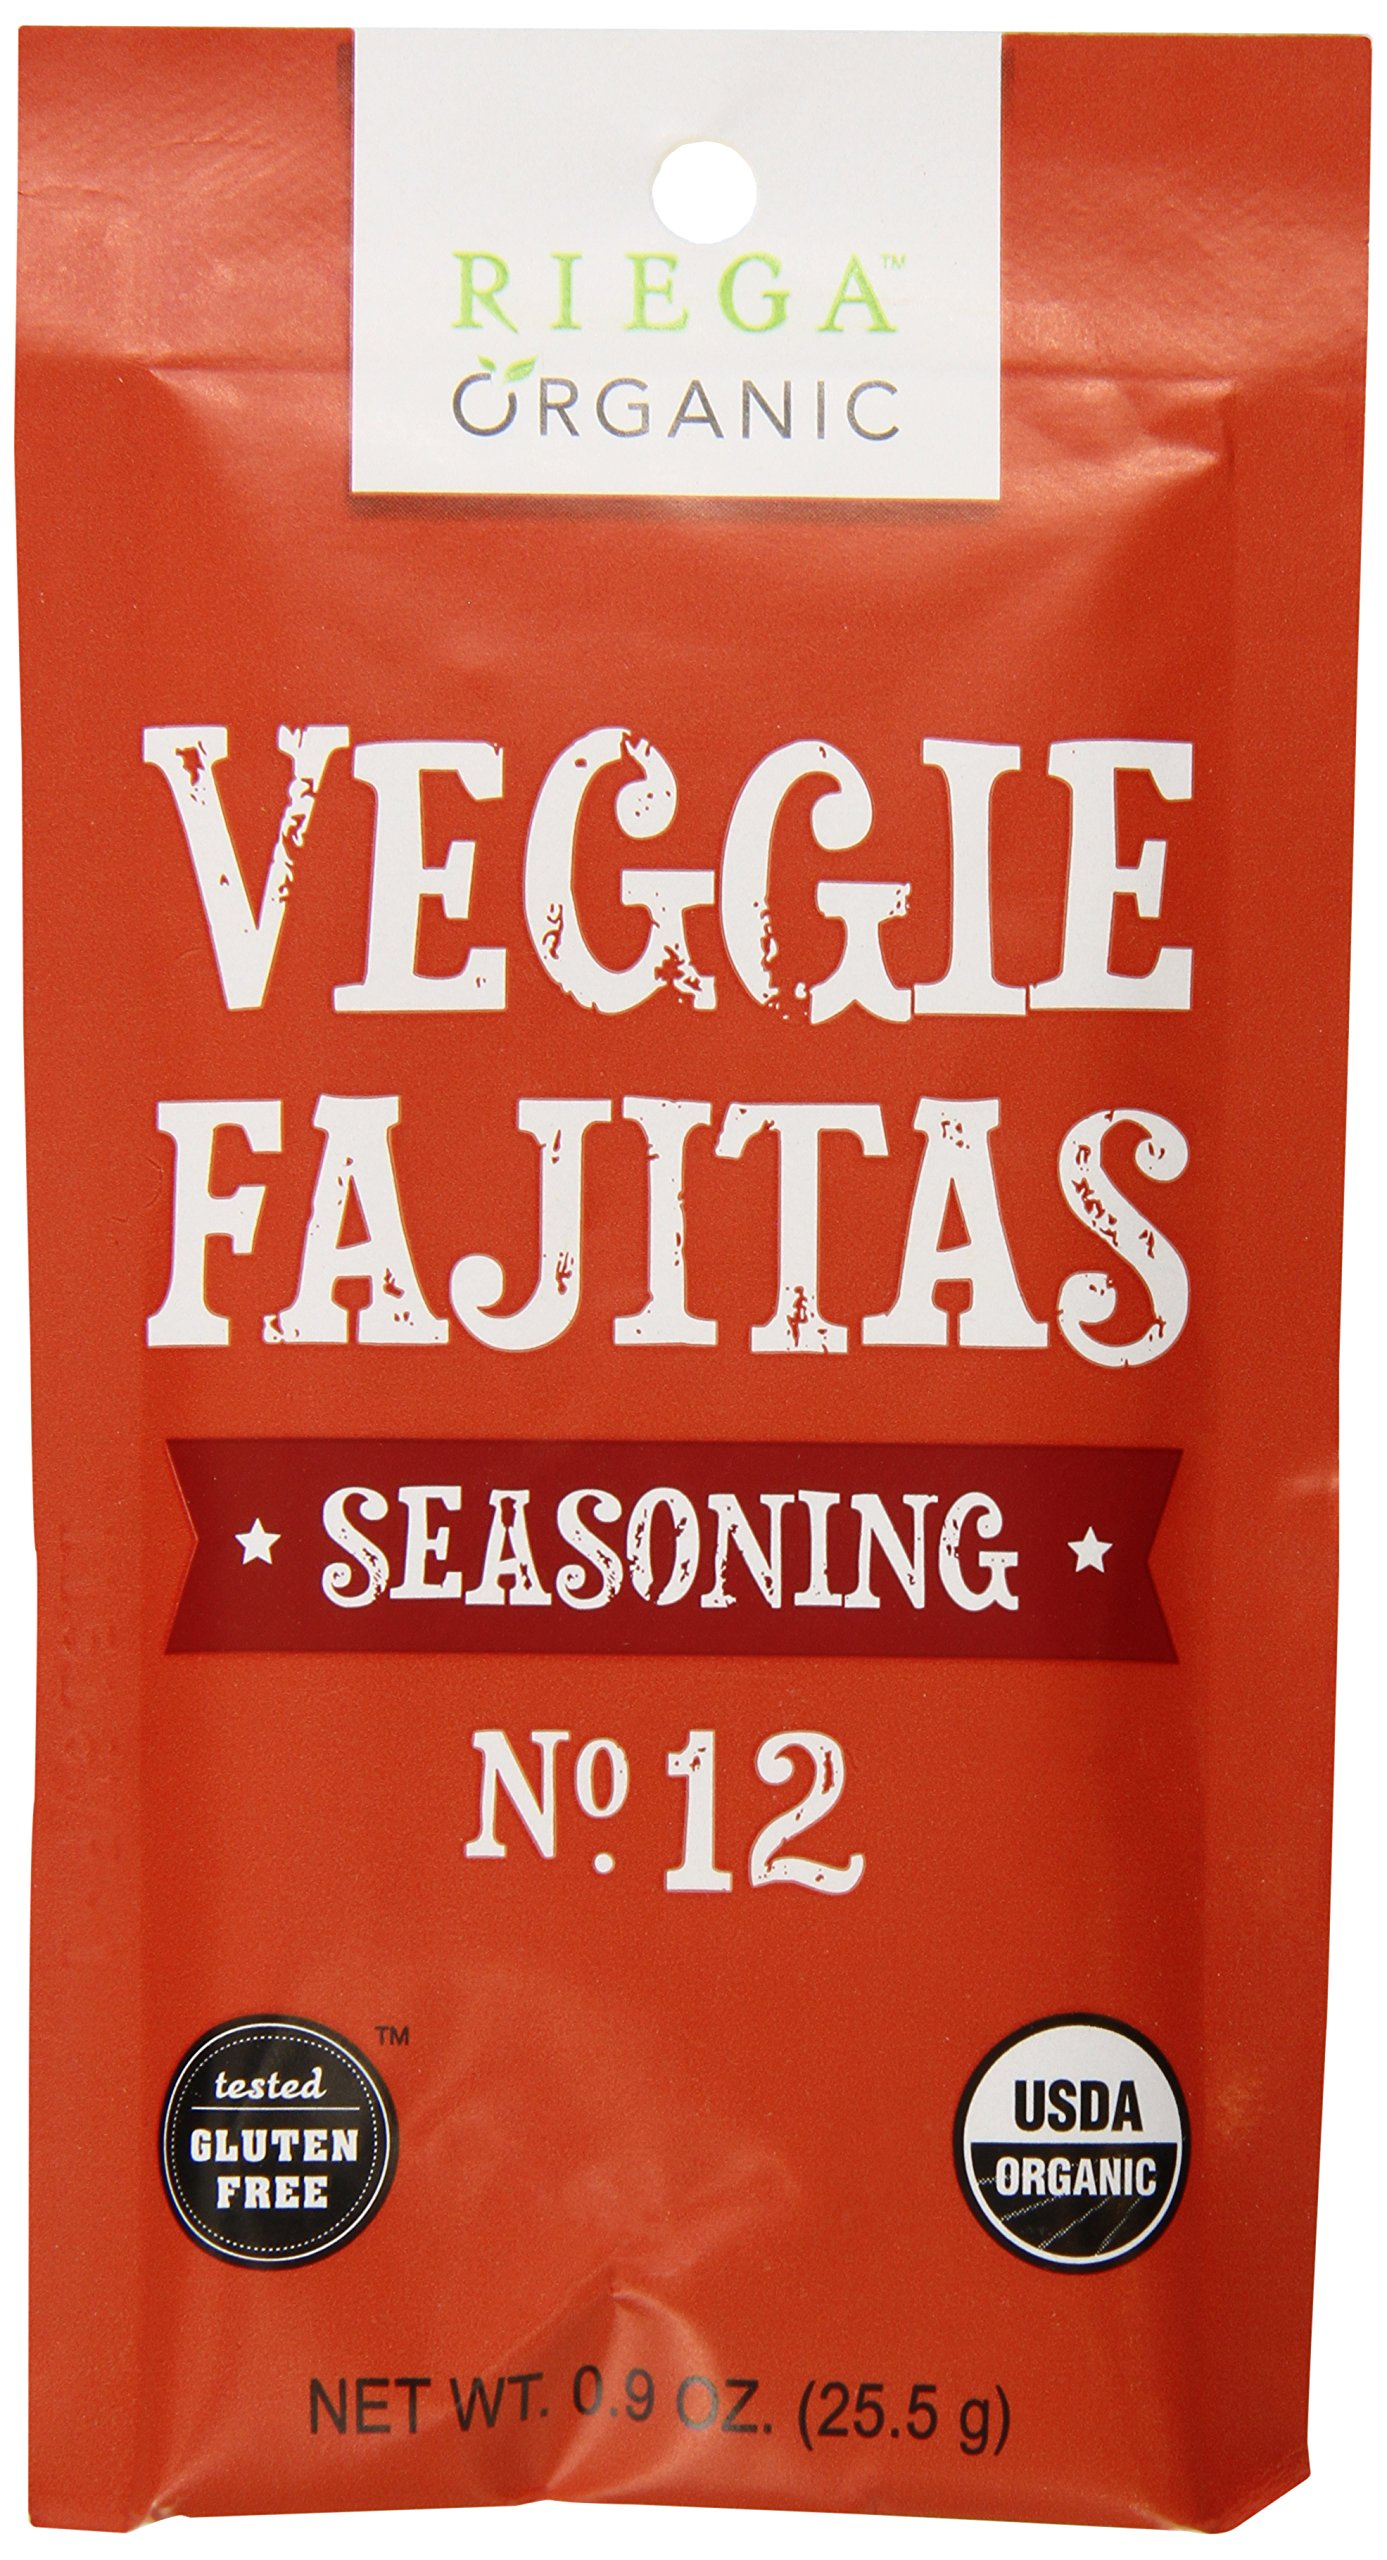 Riega Organic Veggie Fajita Seasoning (Pack of 8) by Riega